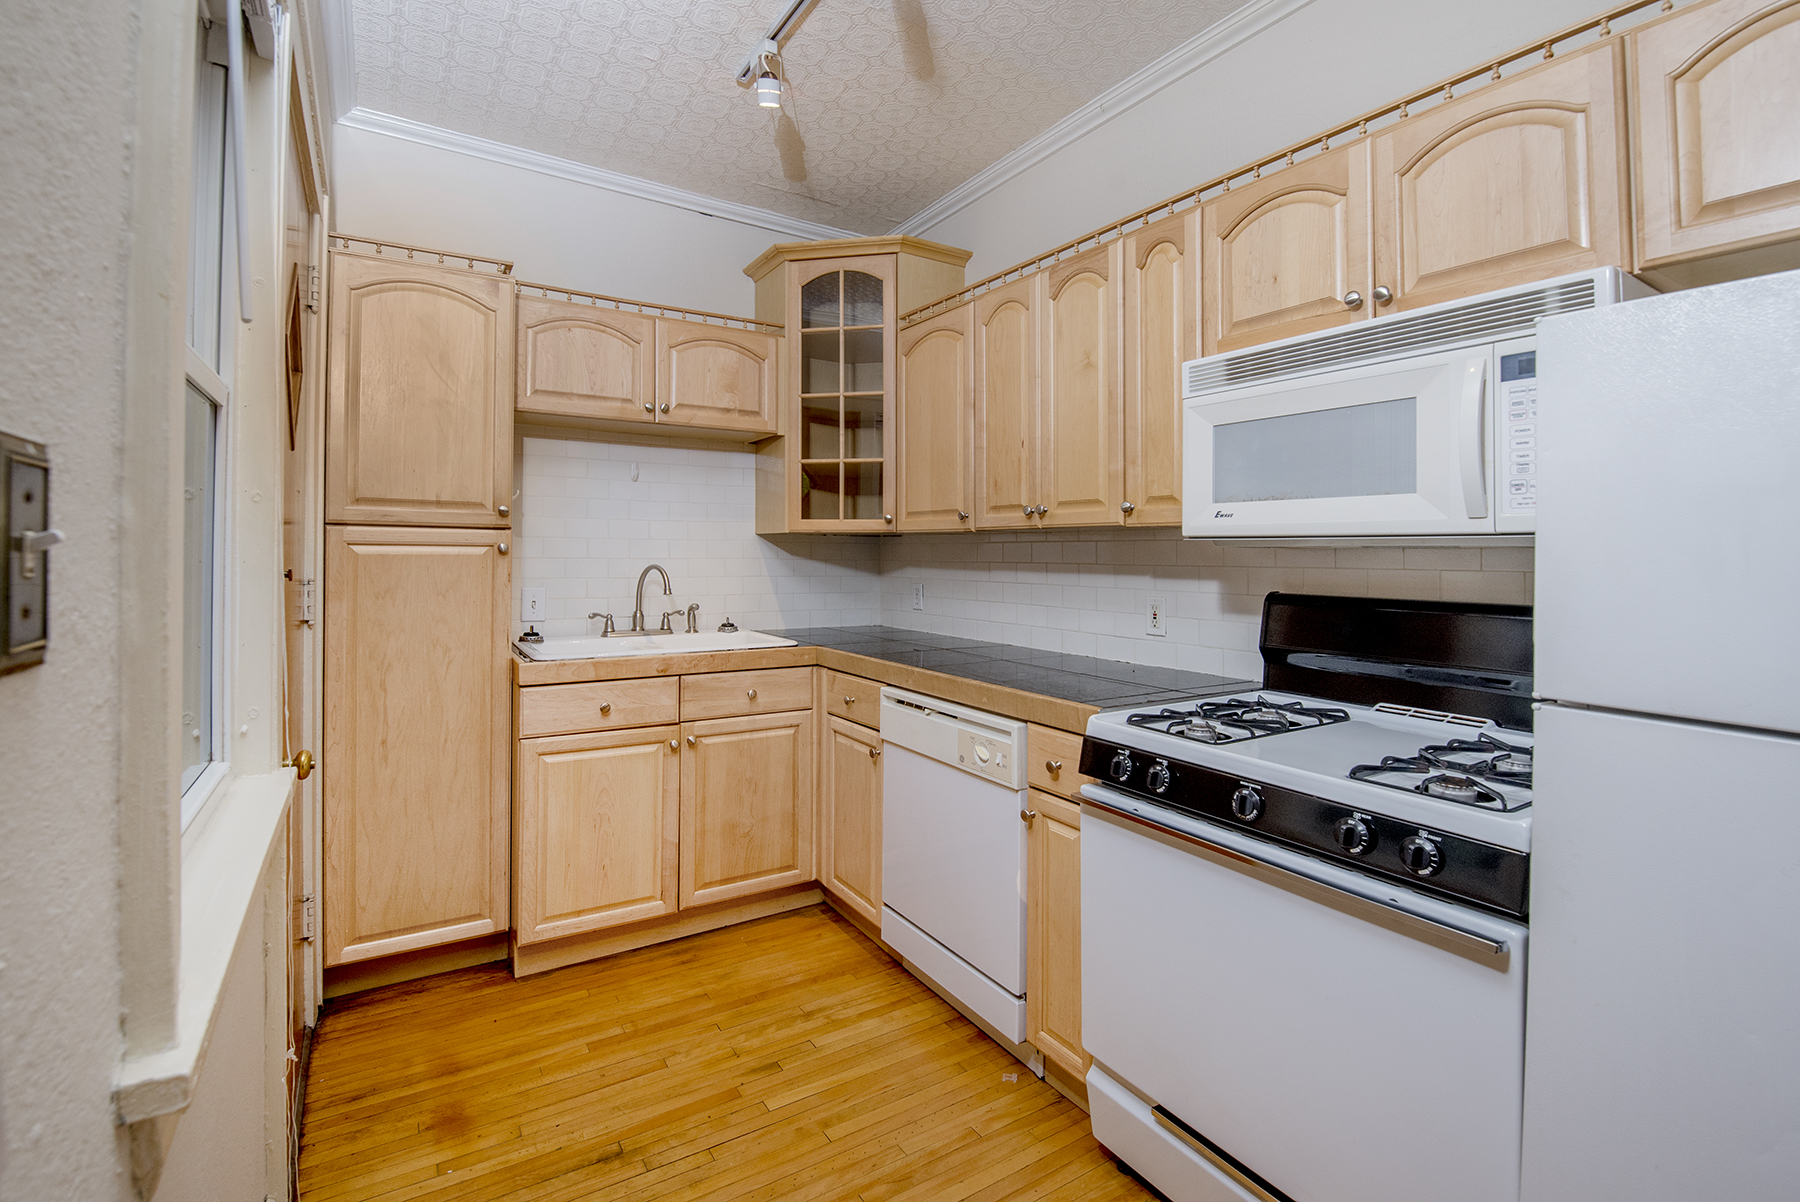 Updated kitchen with dishwasher and lots of storage!